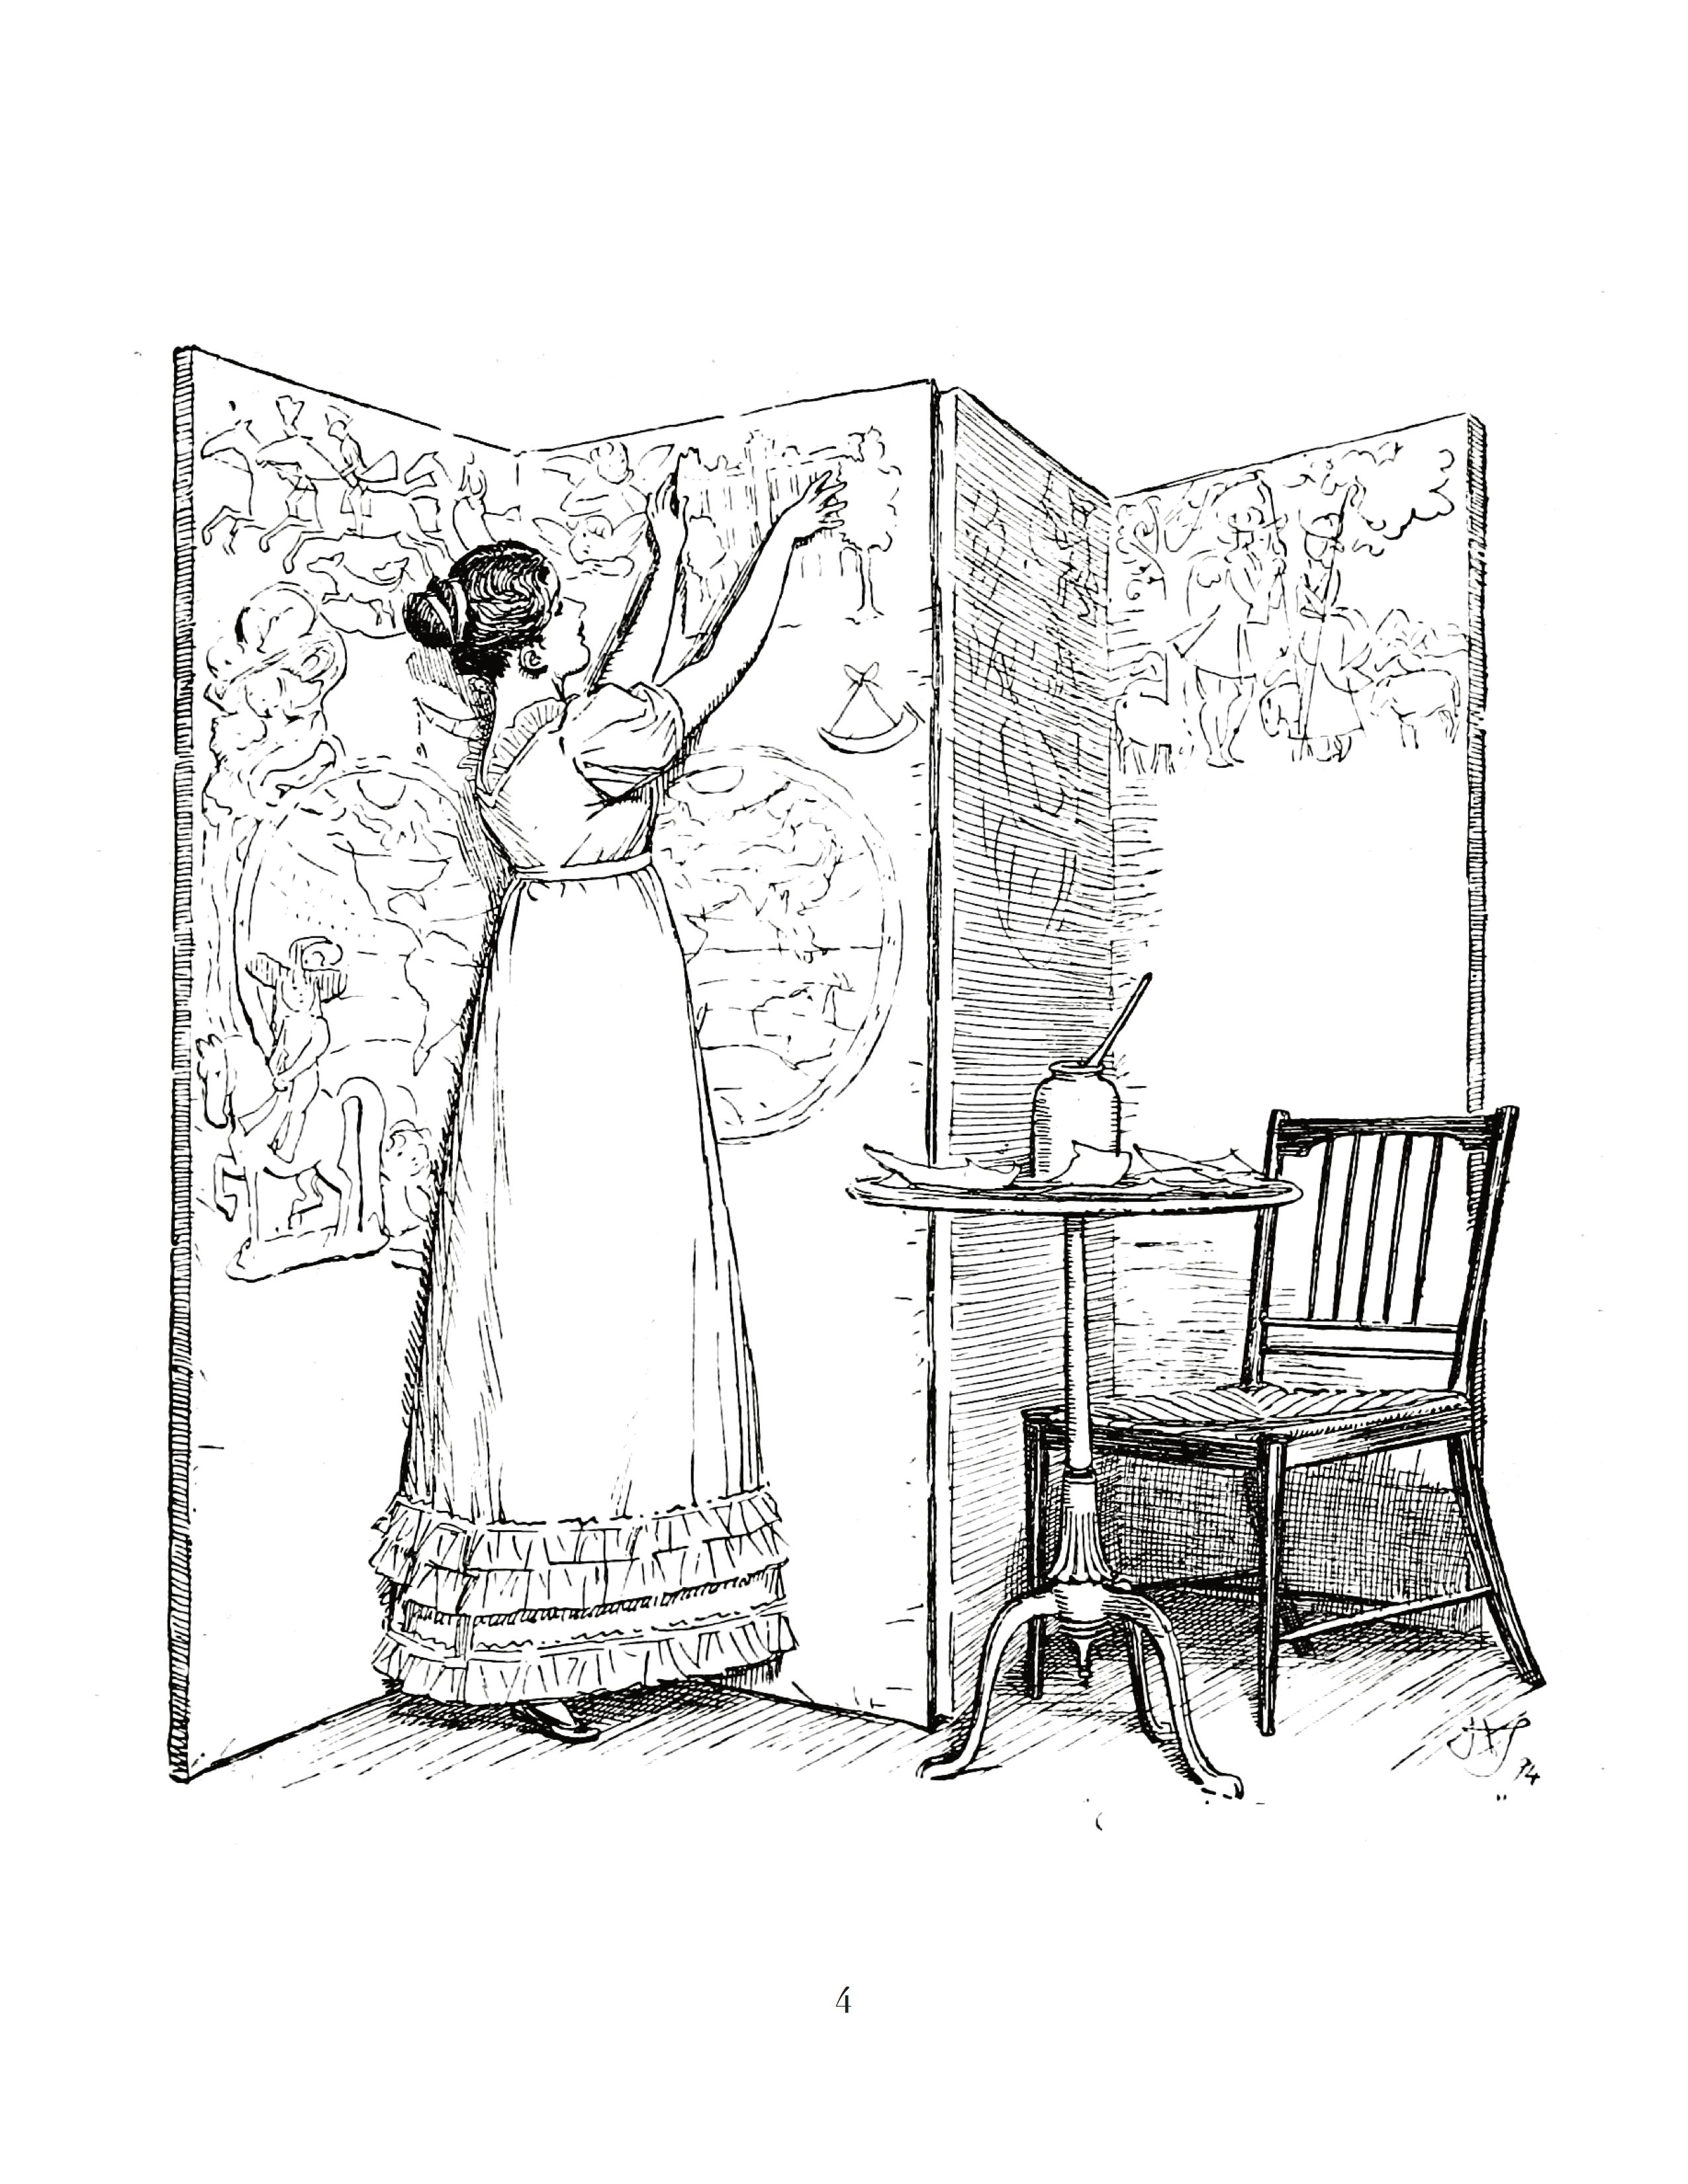 A sample of the coloring pages you can get in Jane Austen